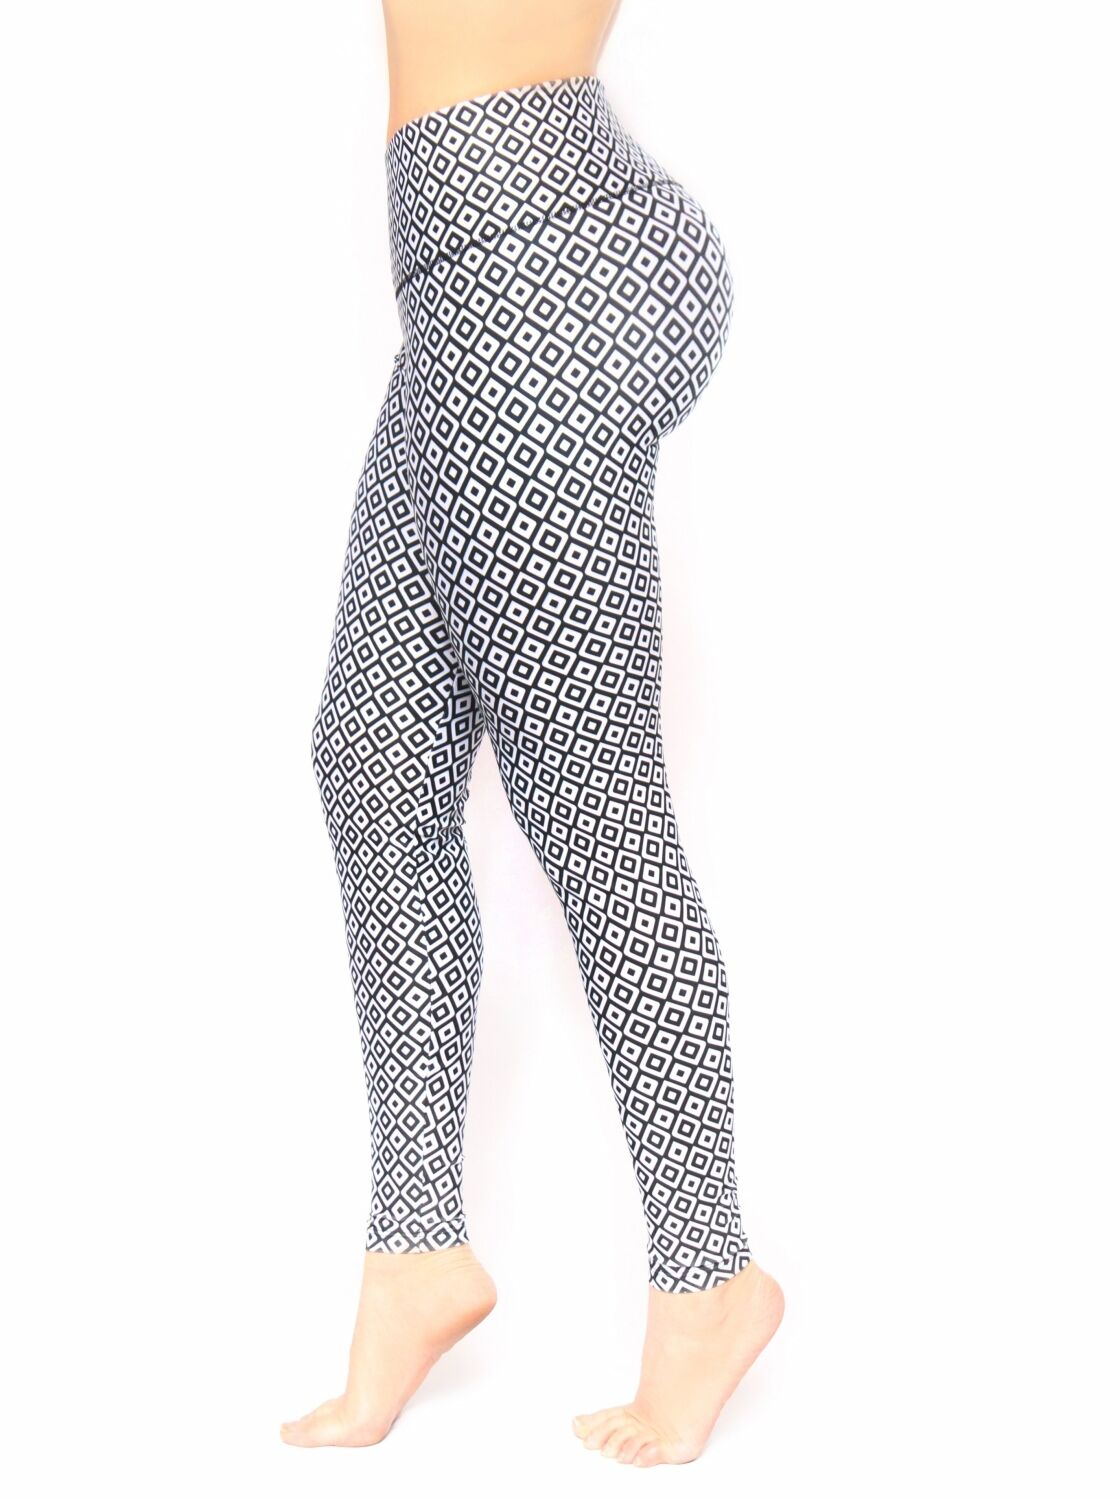 Bon Bon Up Compression Leggings with internal body shaper multycolor stamped1128